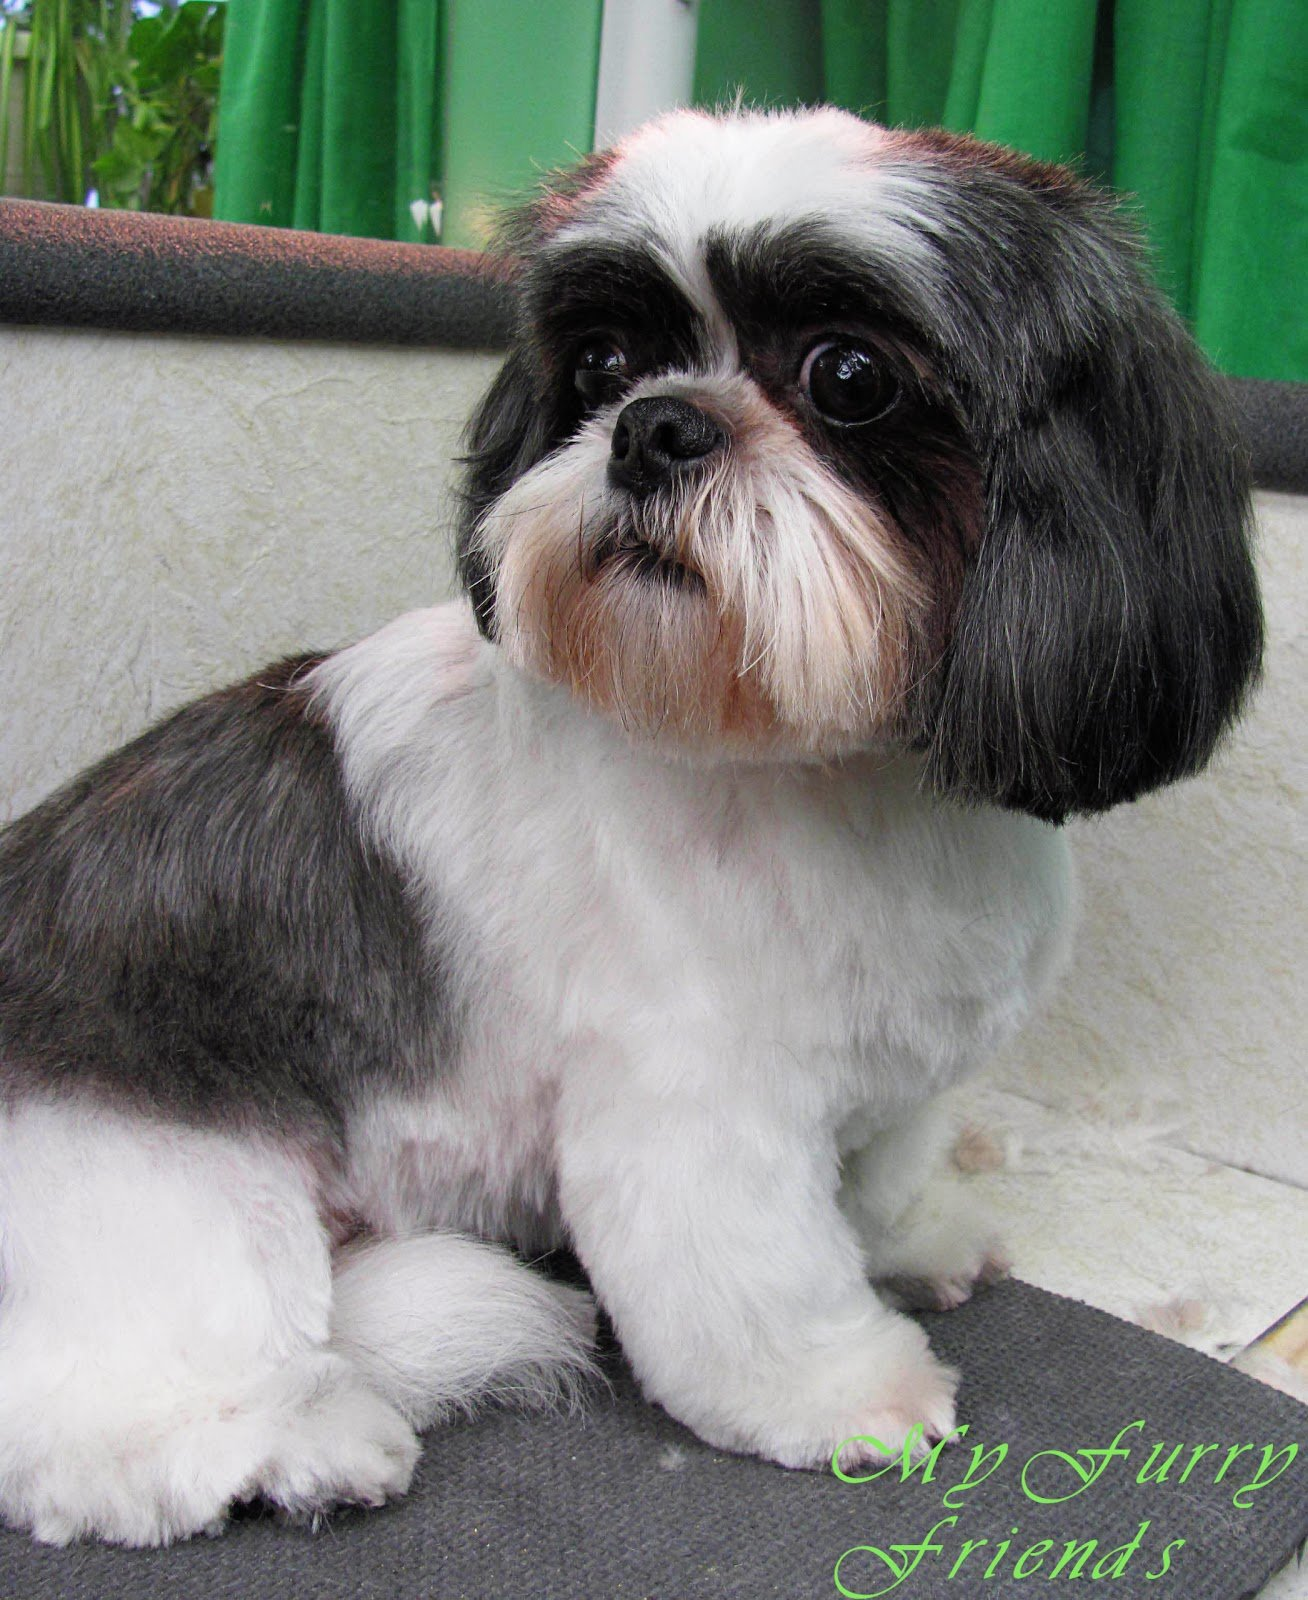 The Best Pet Grooming The Good The Bad The Furry Shih Tzu Day Pictures